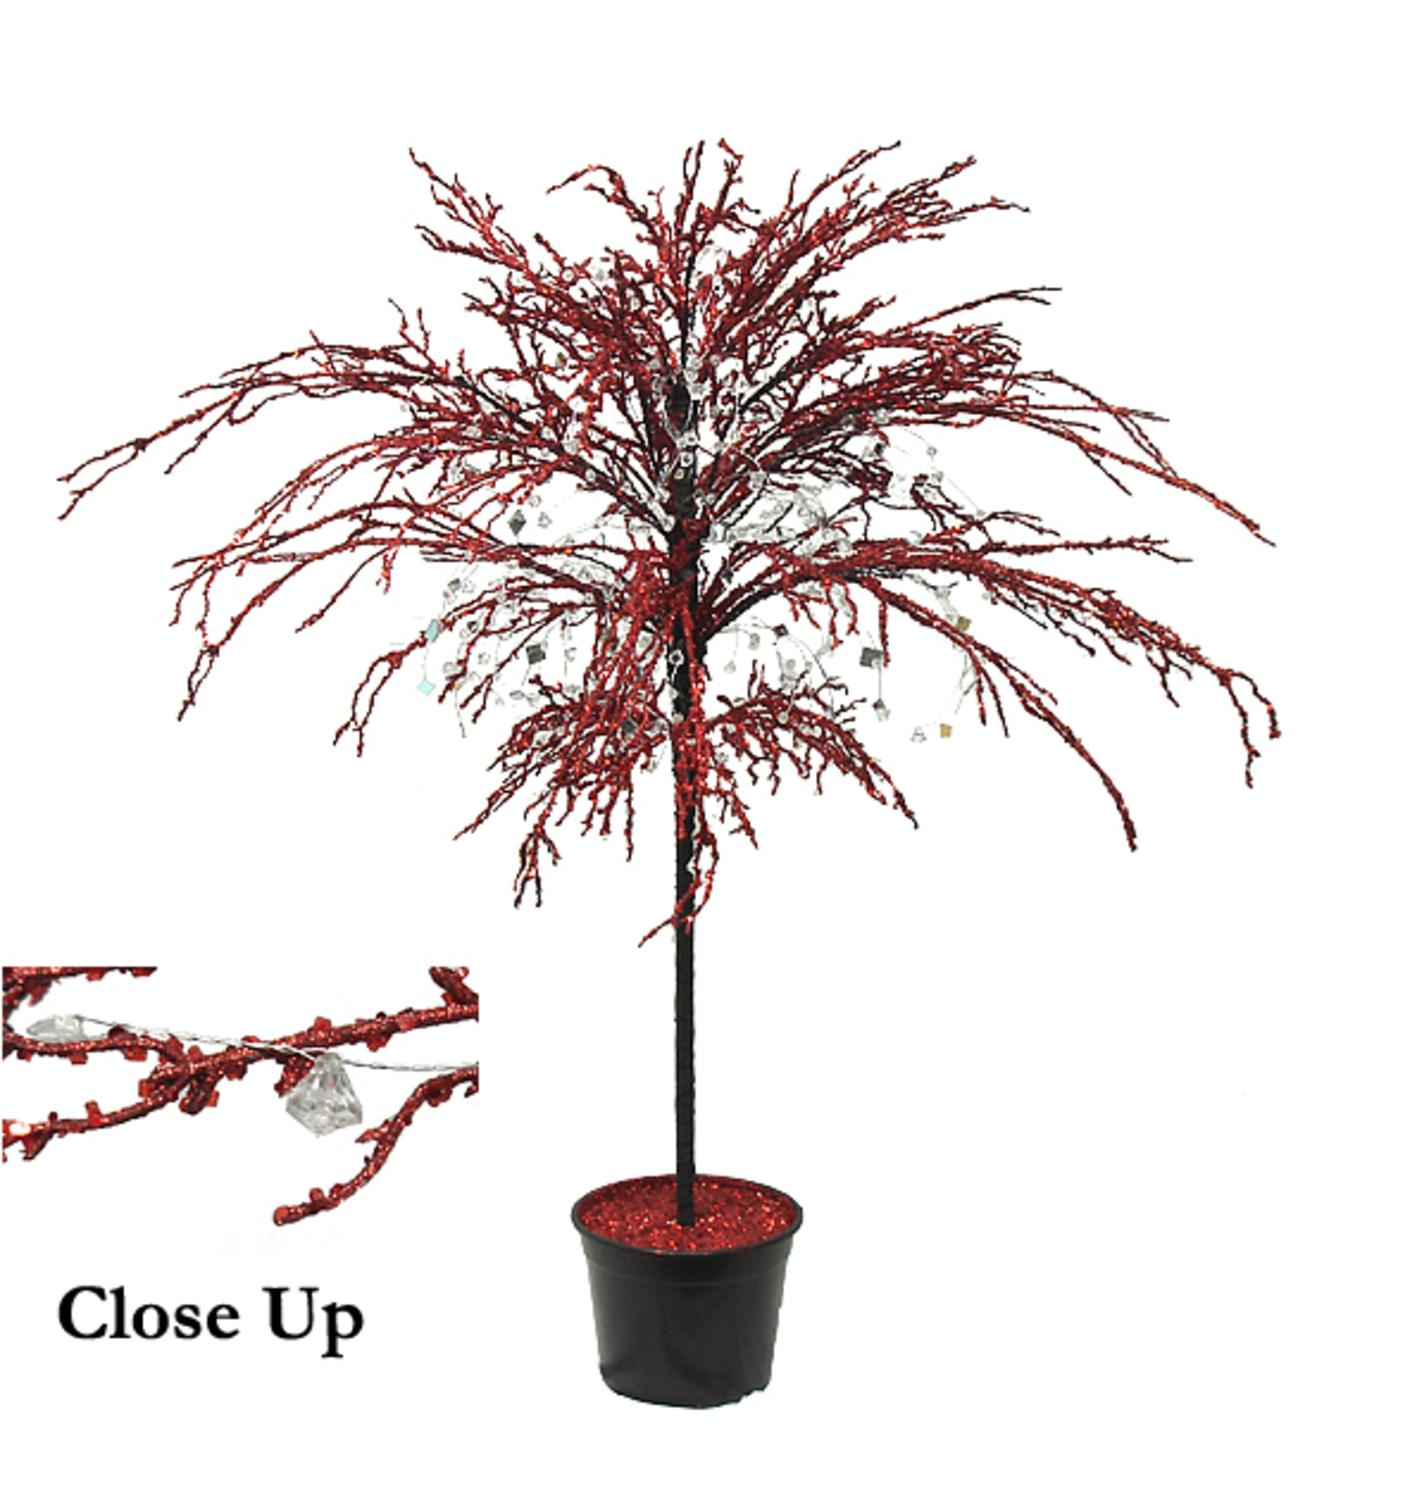 CMI 3.75' Unlit Artificial Christmas Tree Potted Red Crystallized Glitter Mirrors and Beads